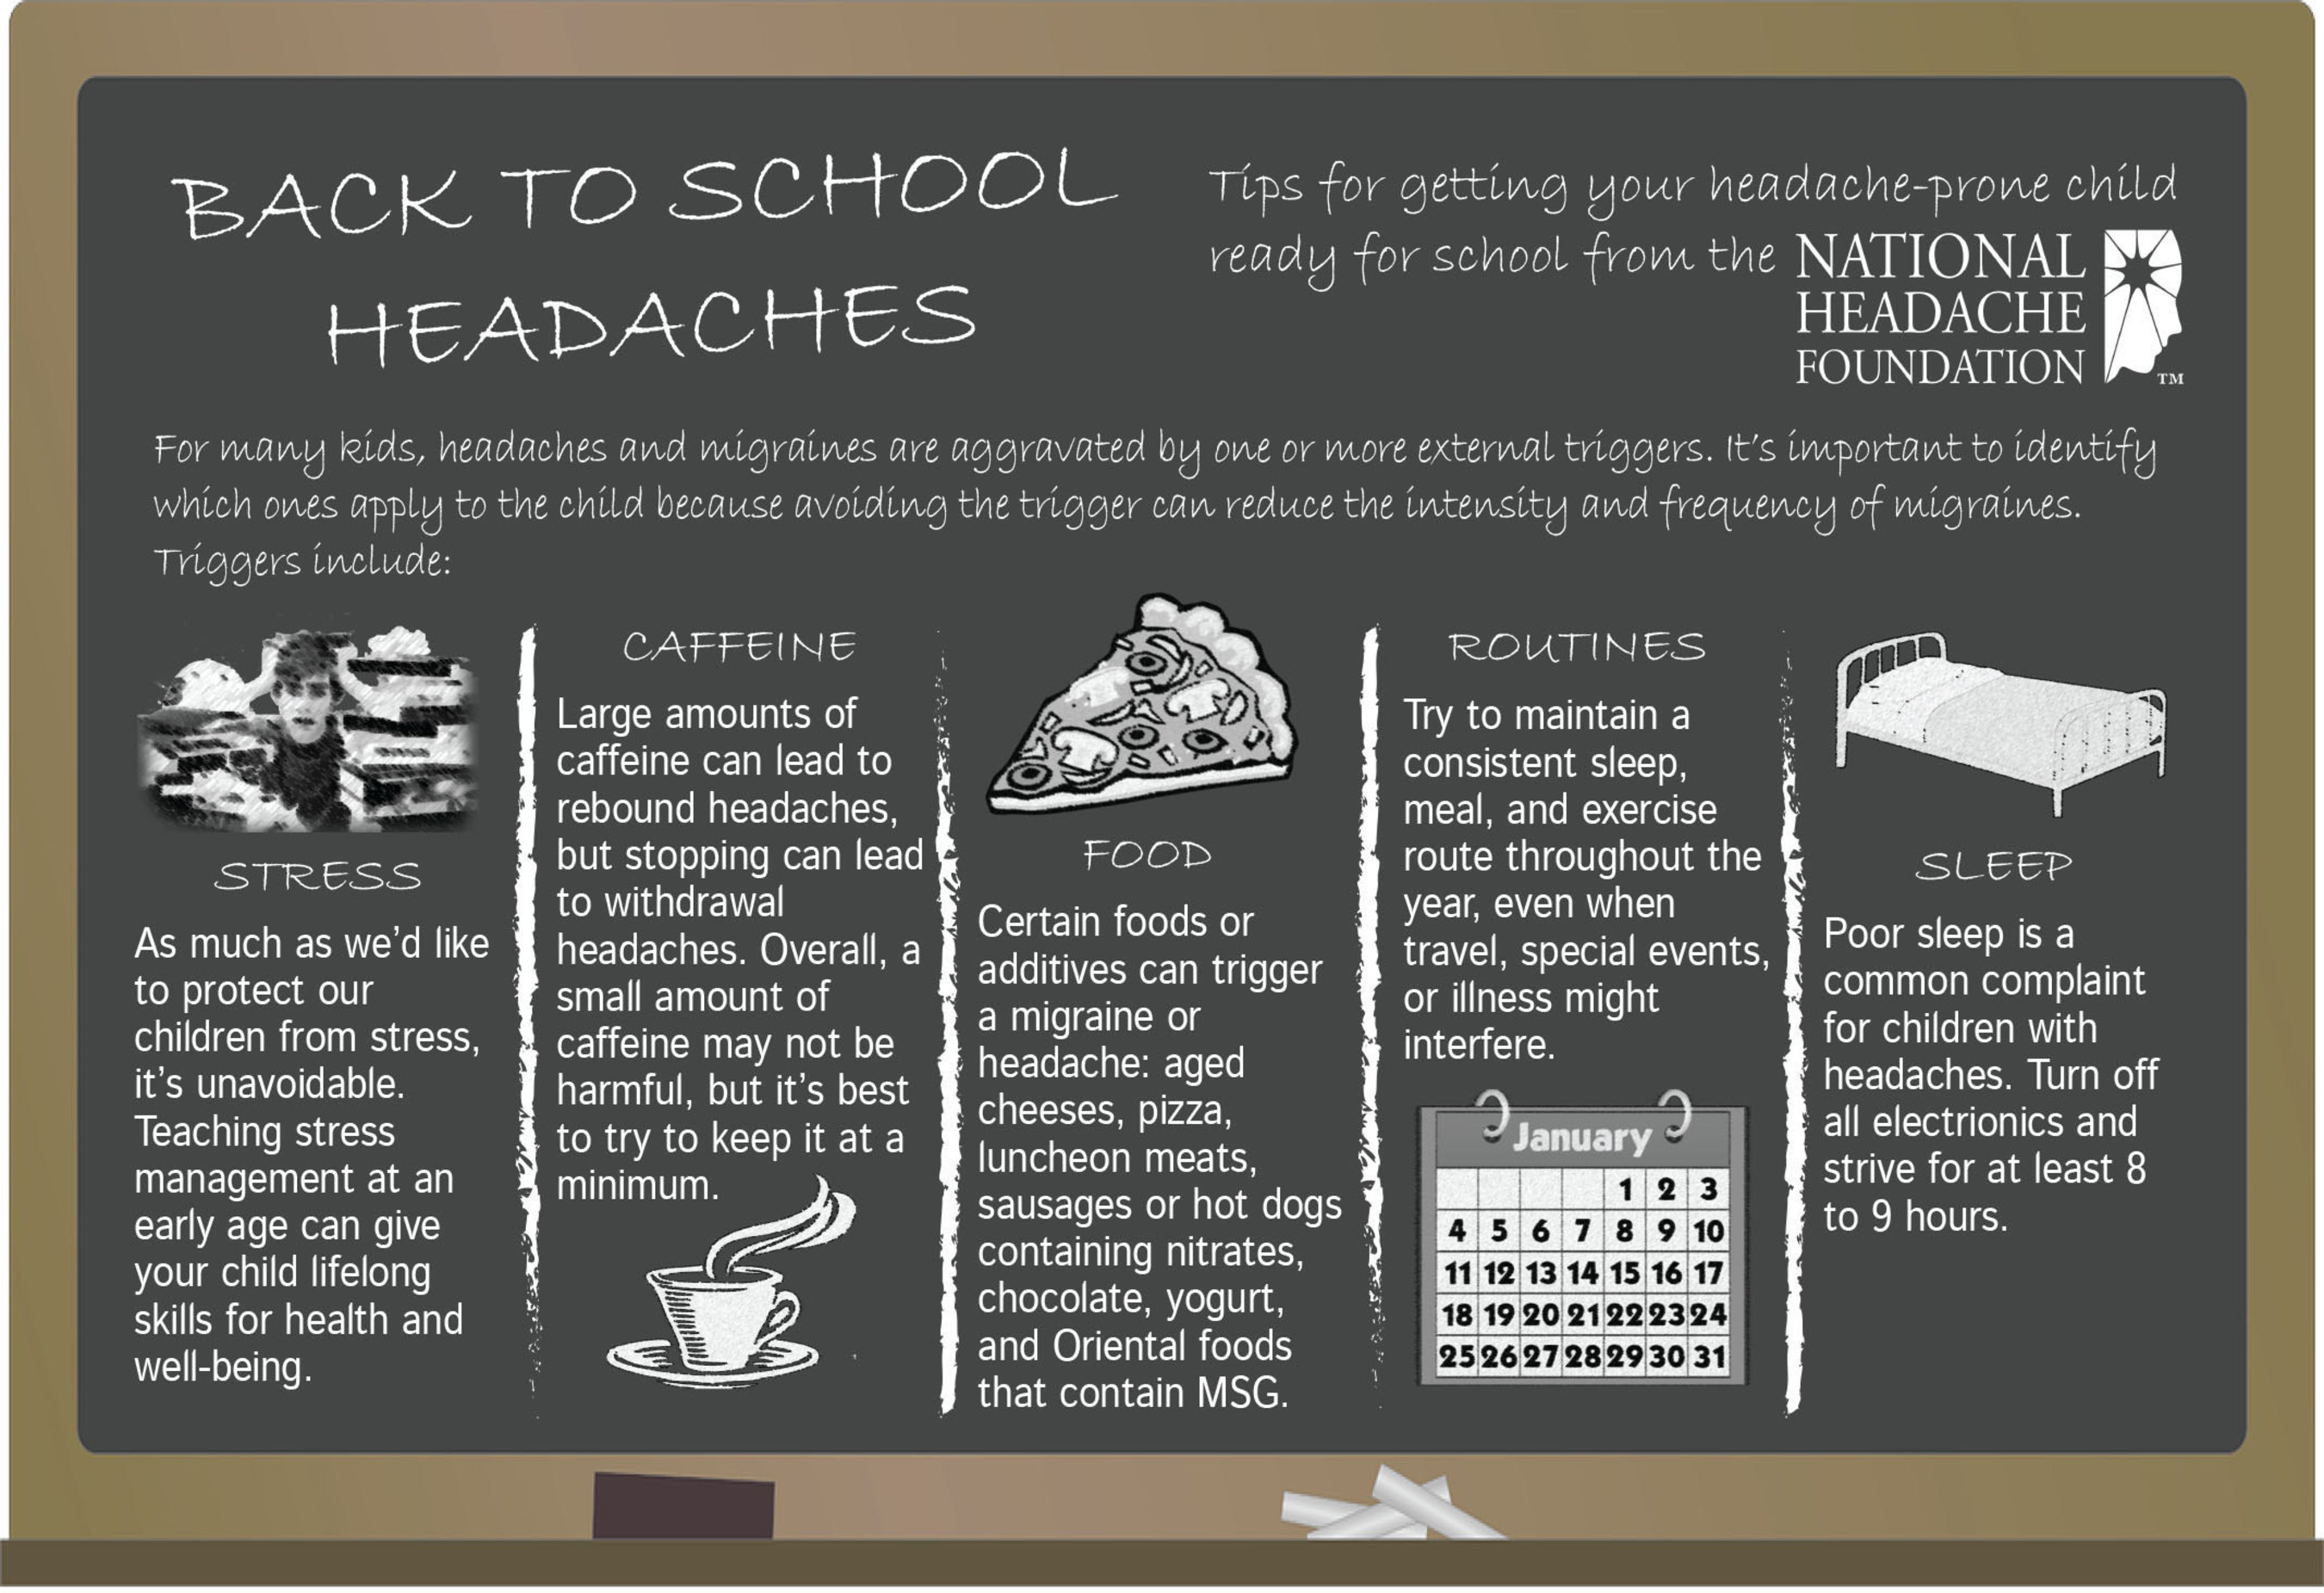 For many kids, headaches and migraines are aggravated by one or more external triggers. It's important to ...